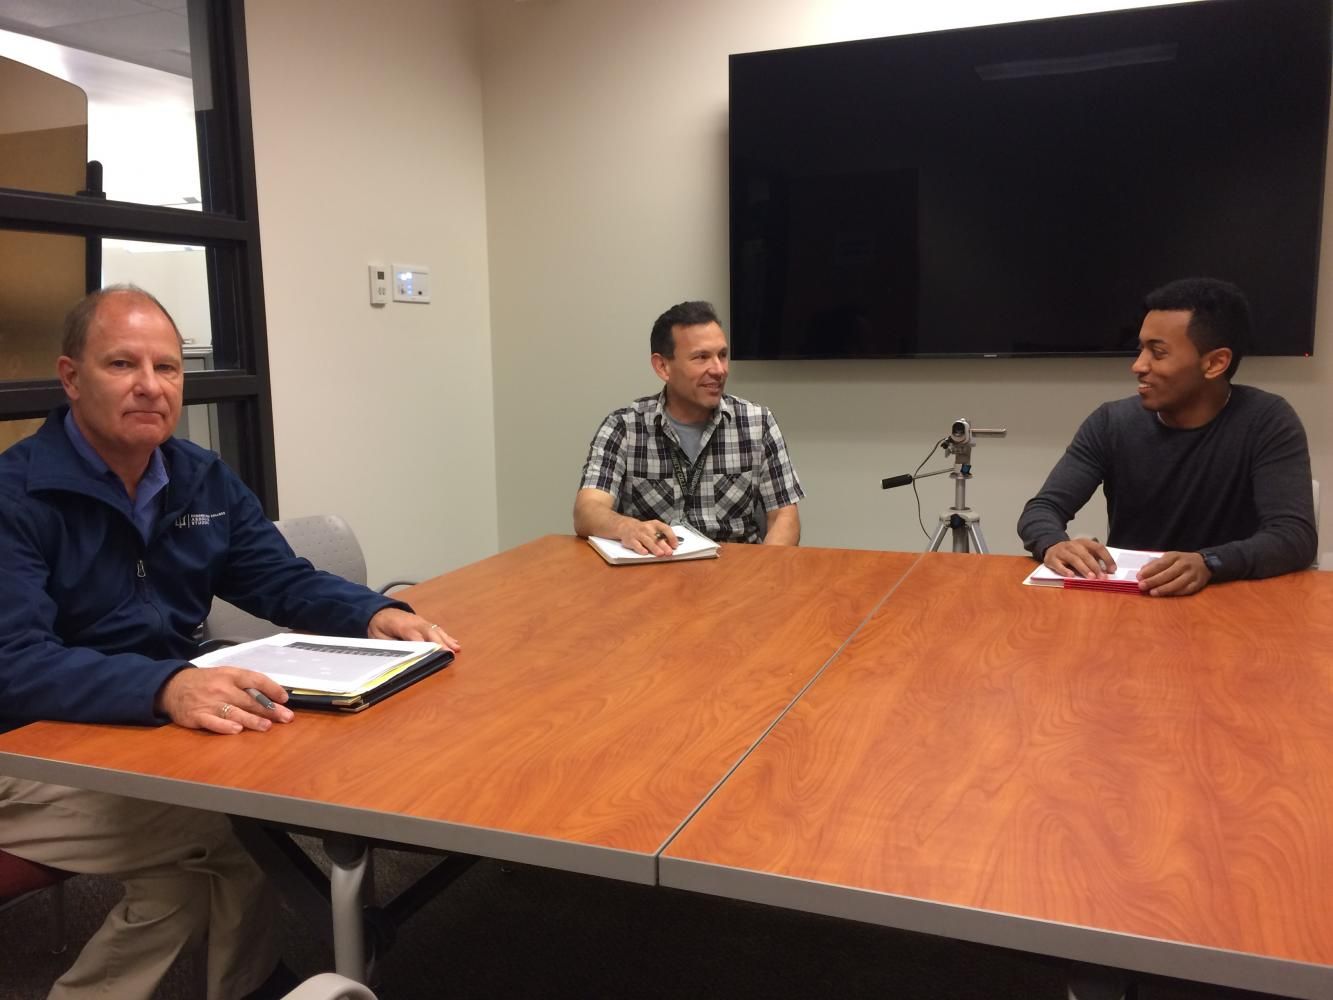 Members of the executive officer committee convened on June 8, preparing to interview an executive board candidate. Naol Debele (right) and Jorge de la Torre (center) chat while Wayne Anthony (left) solemnly regrets cheeky grins and retorts of bygone days.